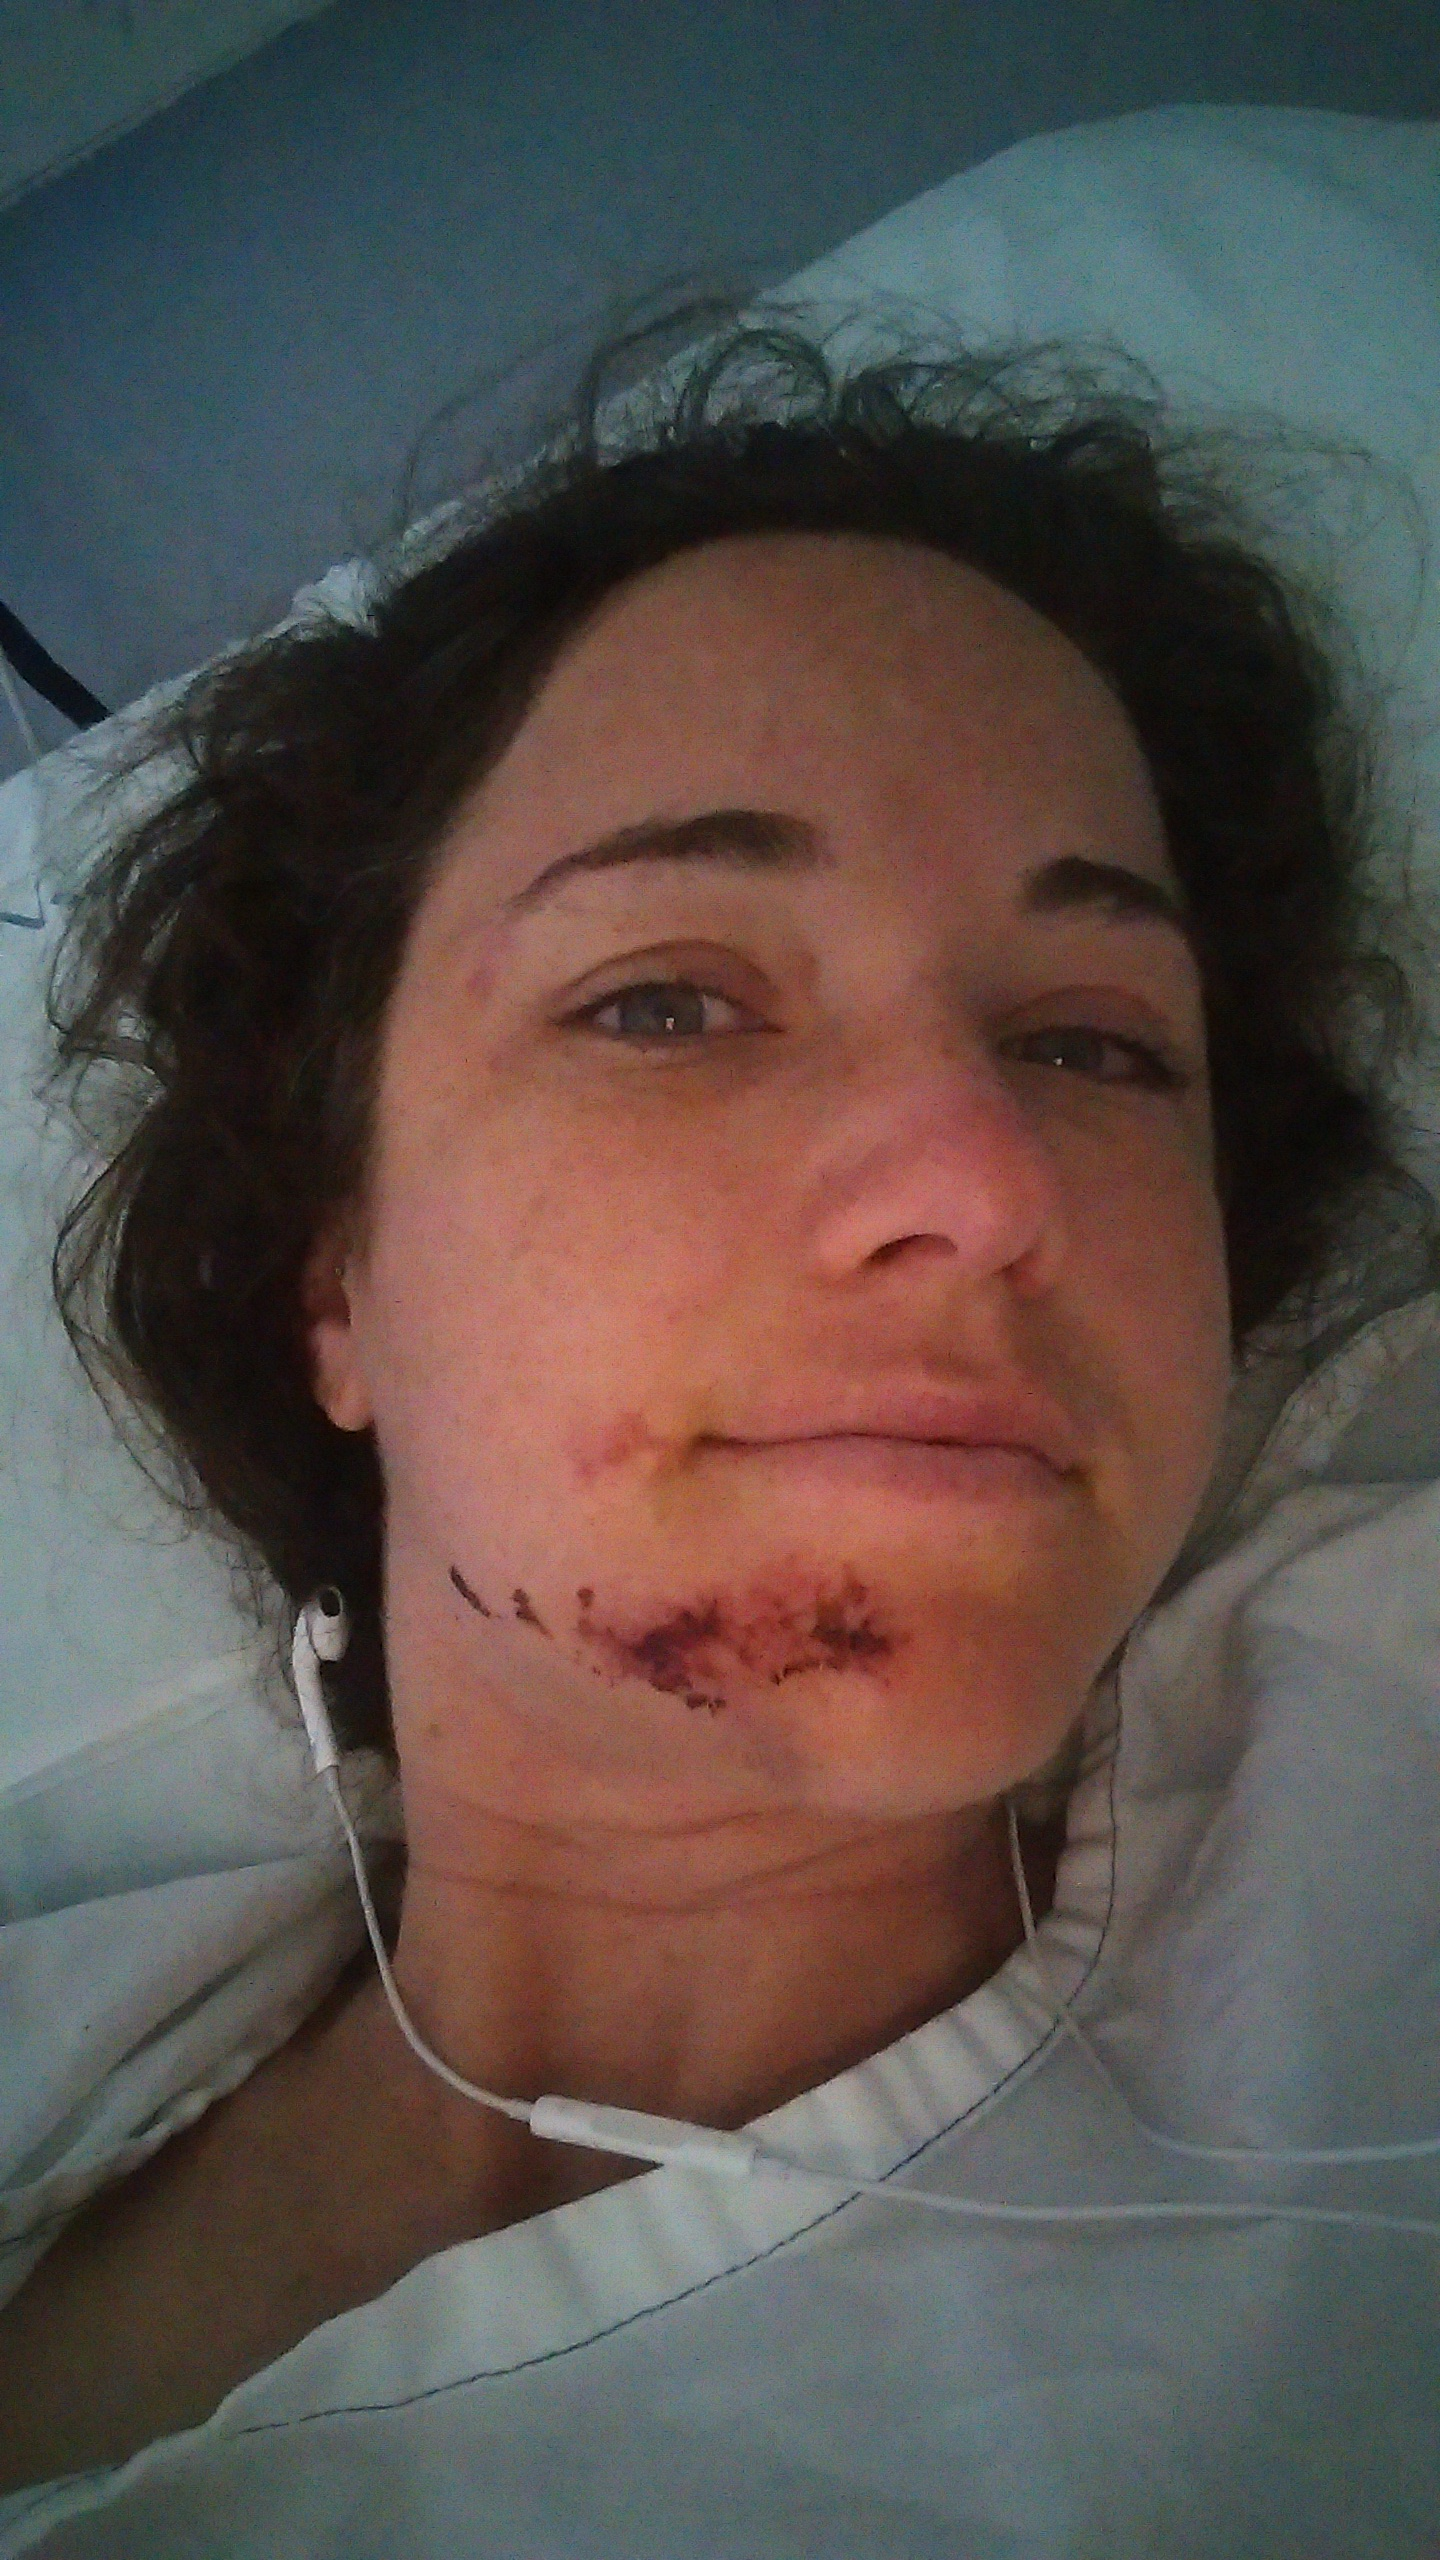 I was hit by a car, paralysed and copped a head injury so bad I couldn't speak